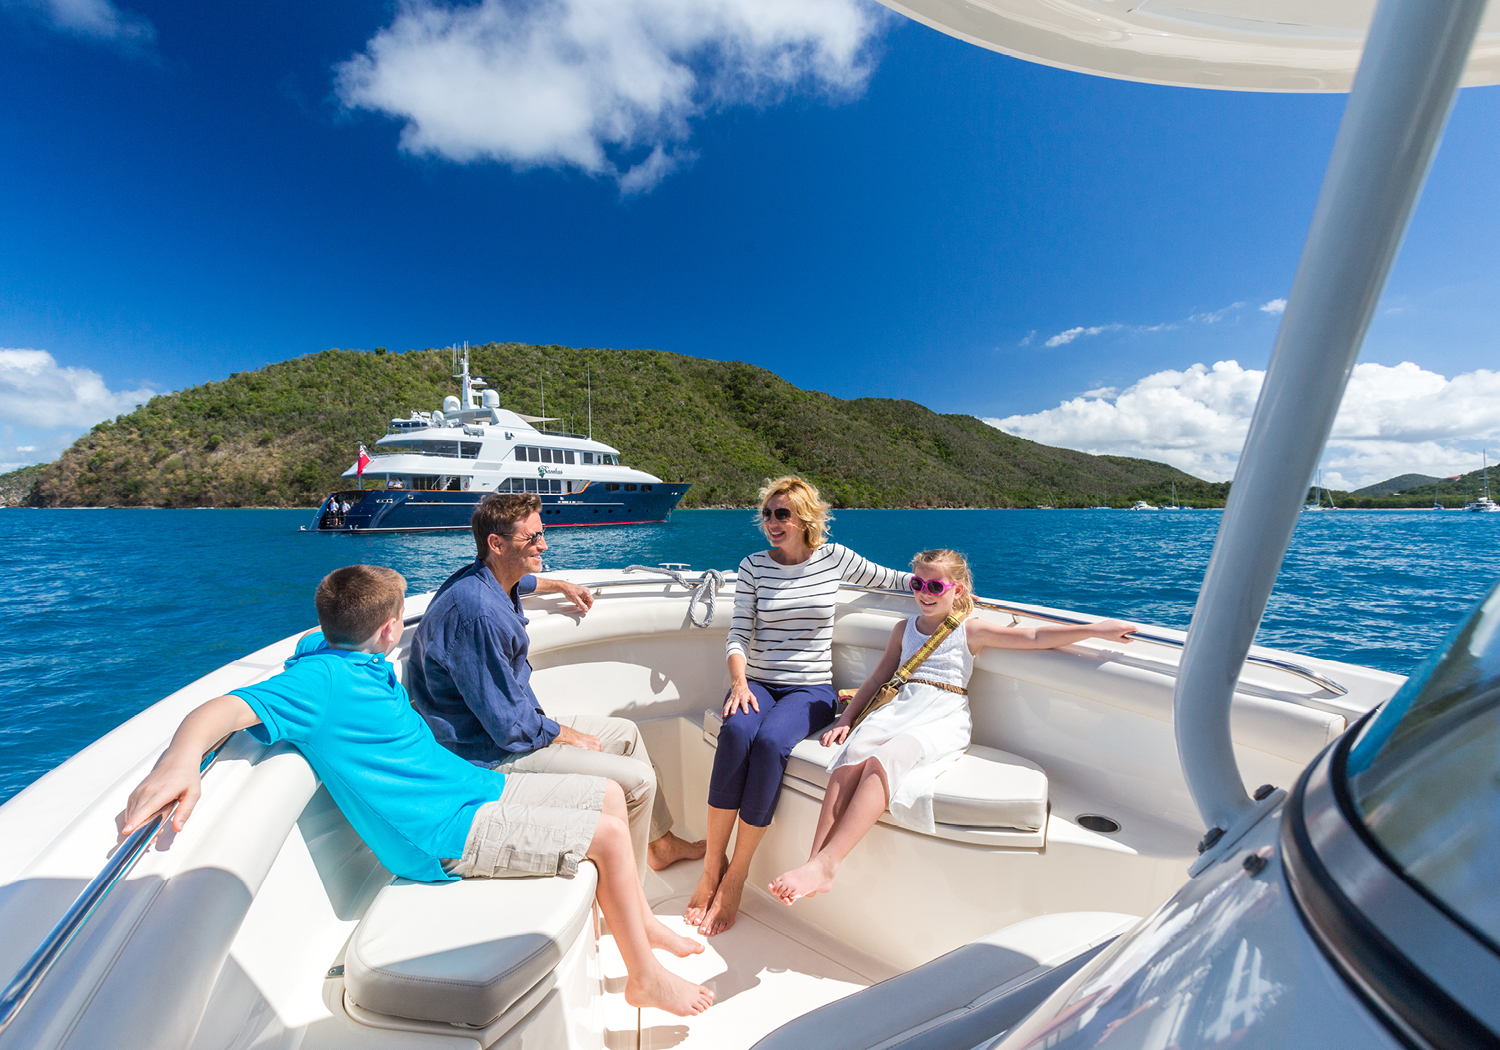 Bacchus Luxury Superyacht Lifestyle Luxury Yacht Browser By